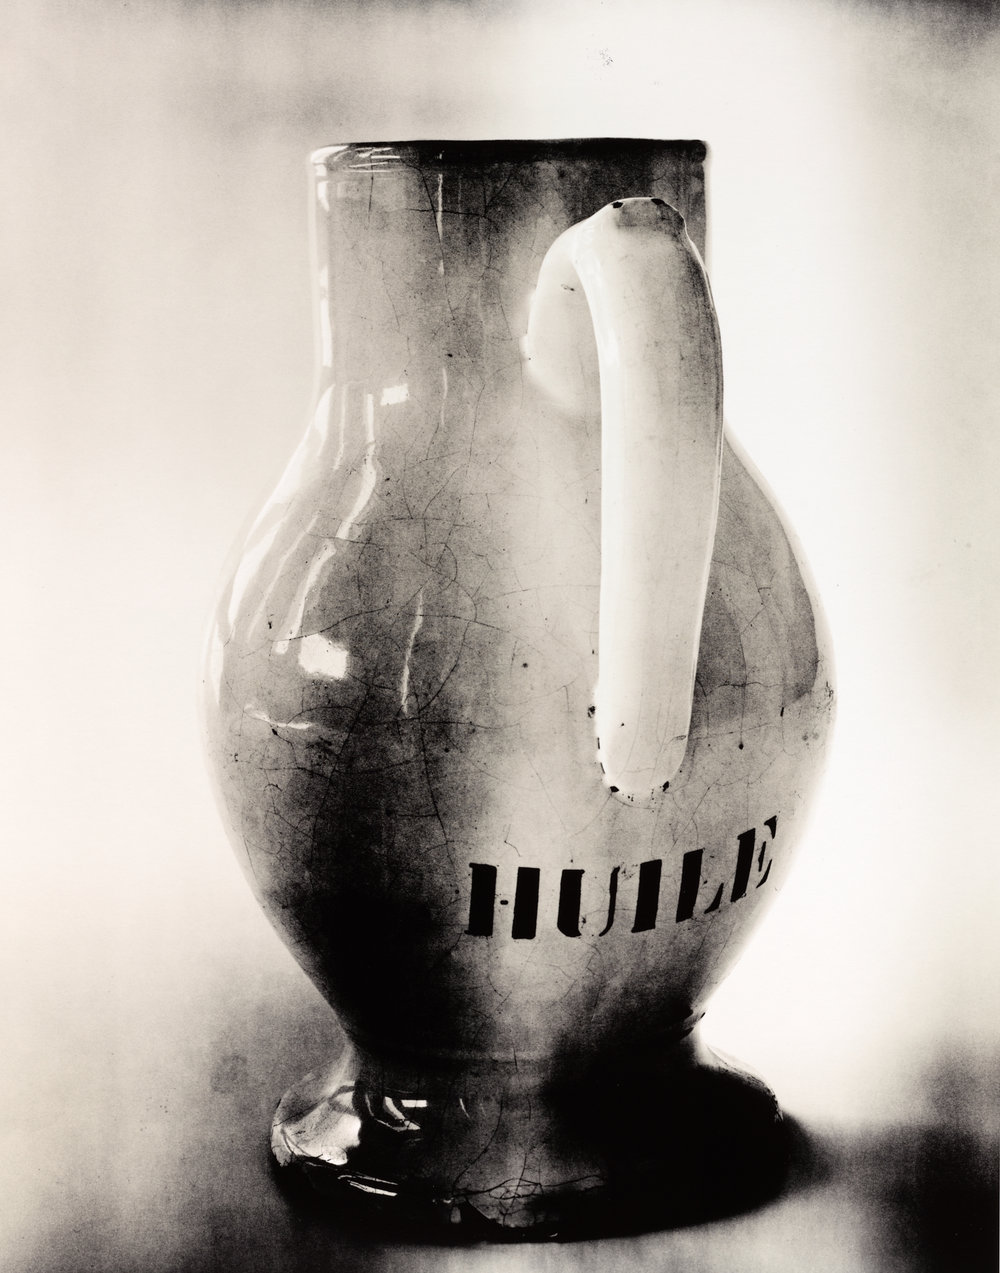 """Huile"" Pitcher , New York, 2007 Gelatin silver print © The Irving Penn Foundation"